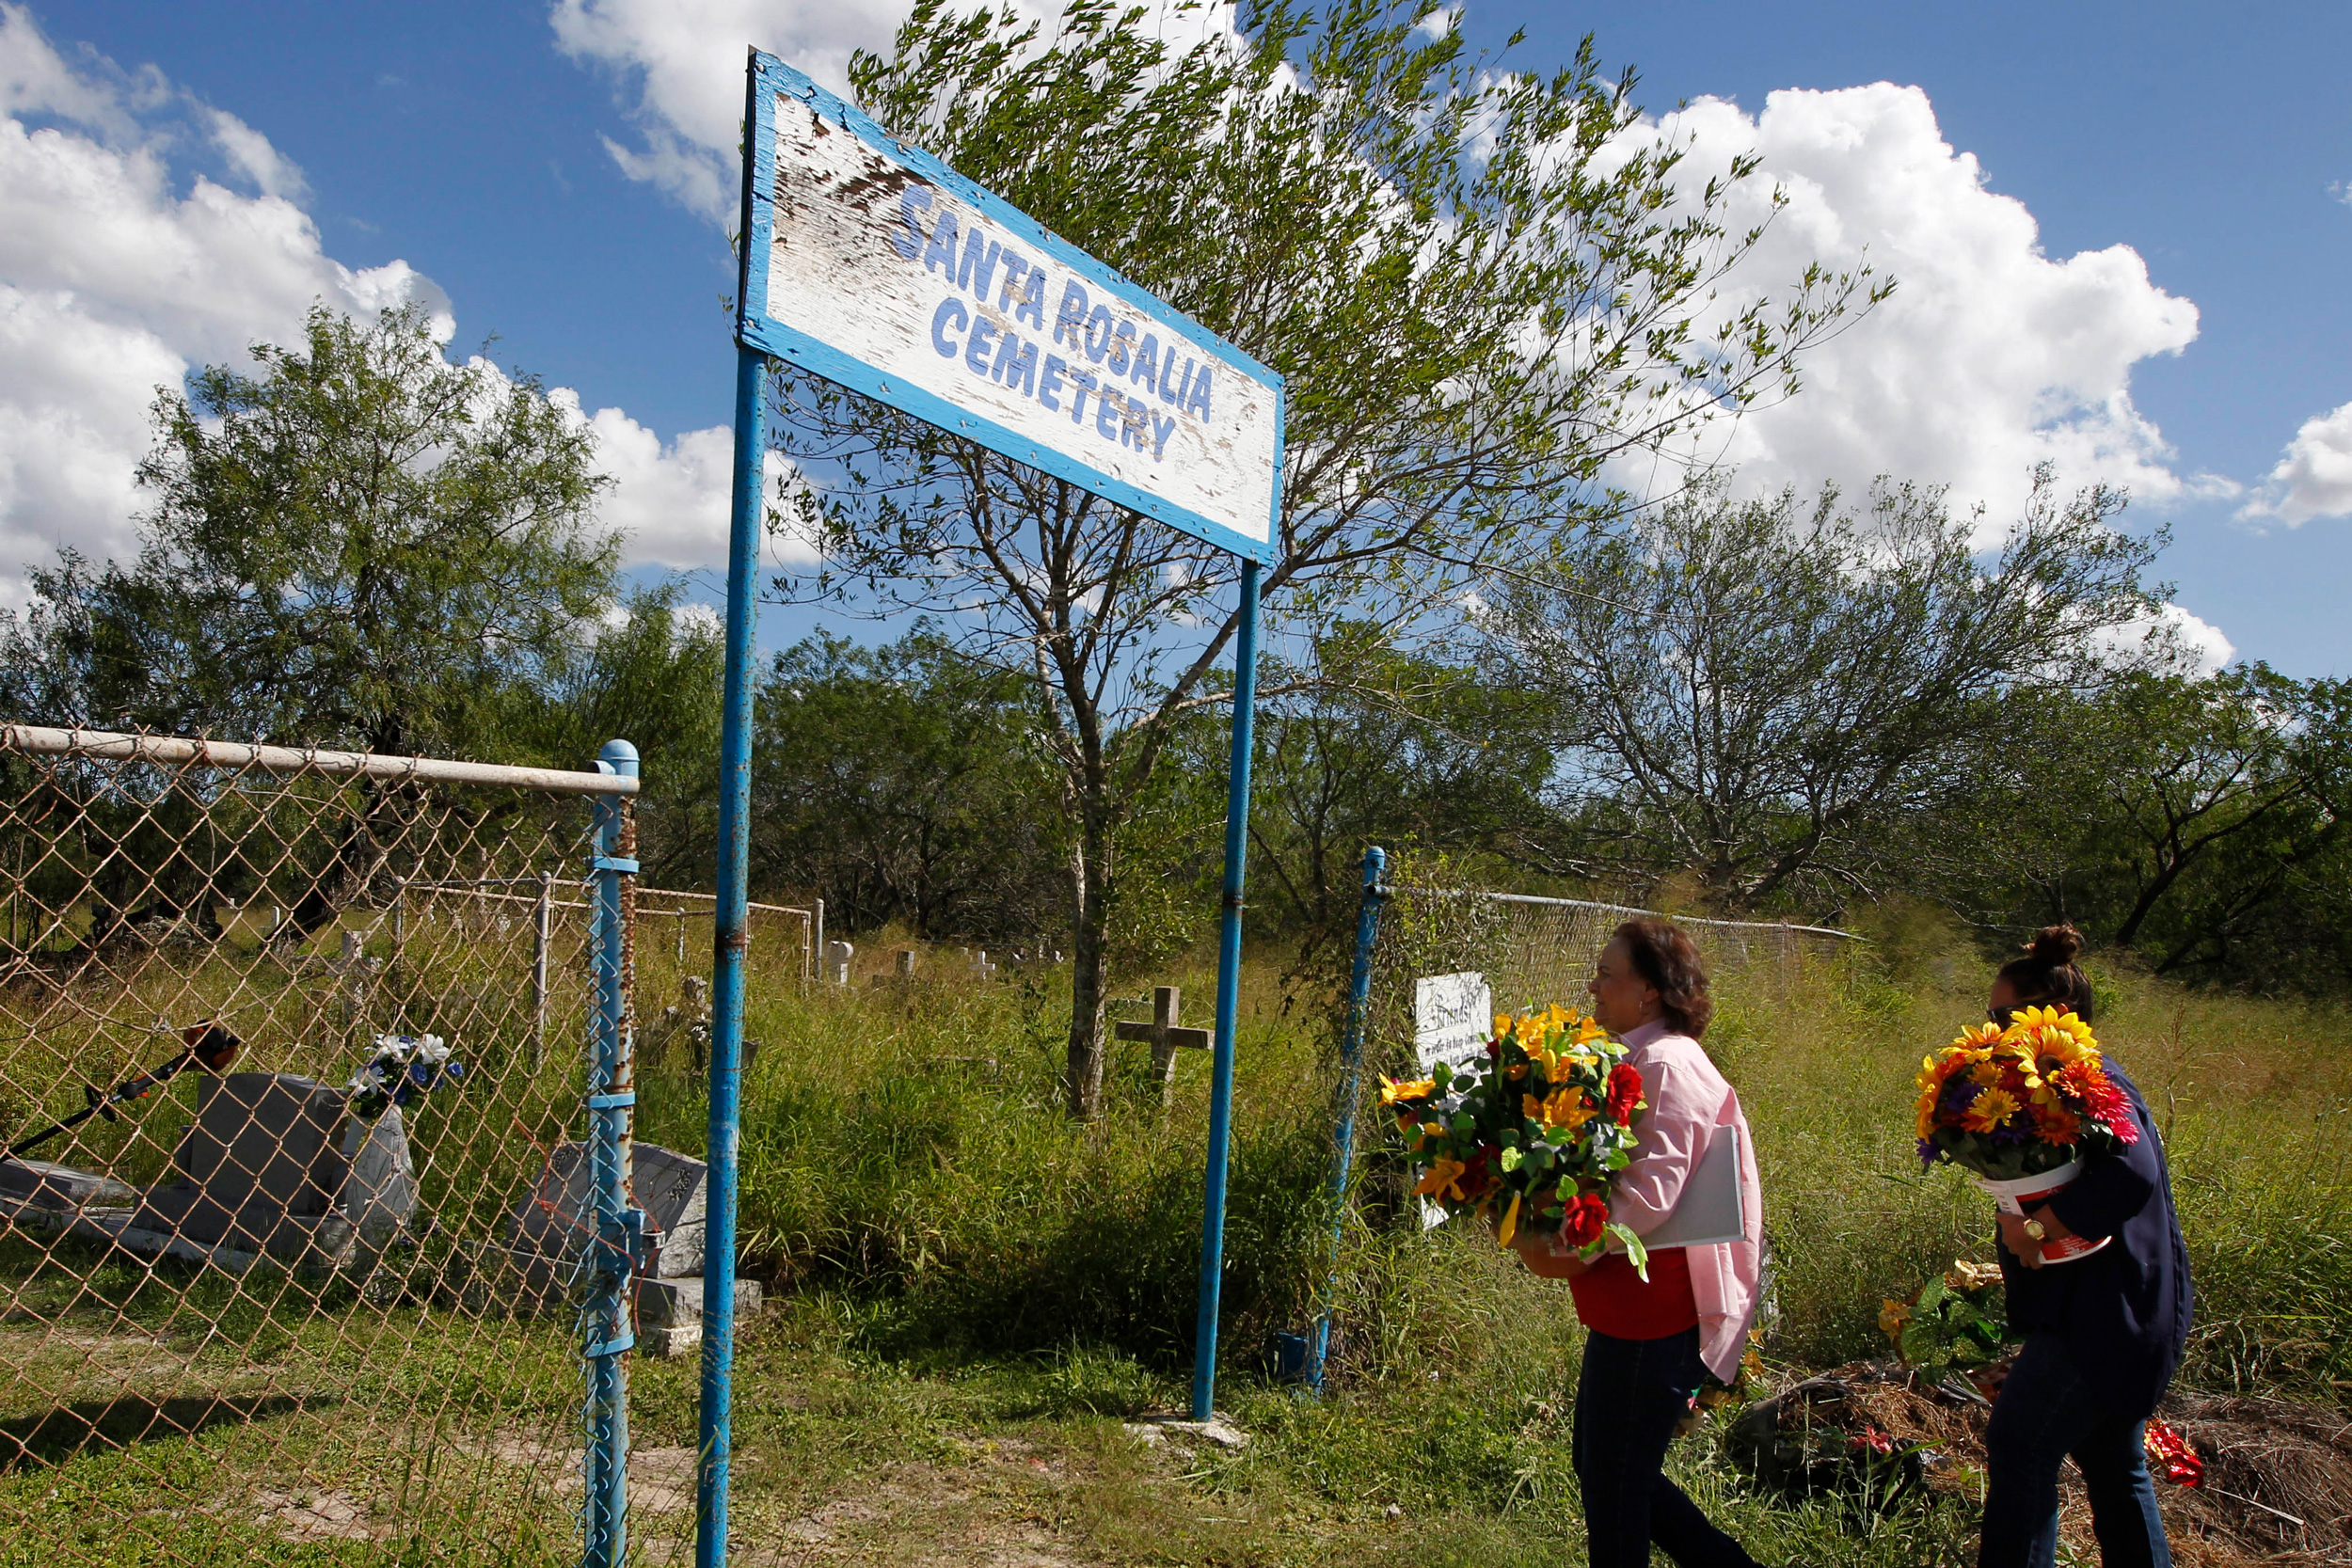 Estela Aguilar Hernandez, left, and her daughter Cecilia Hernandez carry flowers for the graves of deceased relatives into the Santa Rosalia Cemetery on Tuesday, Oct. 24, 2017, in Brownsville, Texas. Hernandez' grandparents and many other relatives are buried at the cemetery, which is located south of the border wall just north of the Rio Grande. Hernandez fears last year's approval of border gate funding will limit access to the cemetery.  (Nathan Lambrecht/The Monitor via AP)